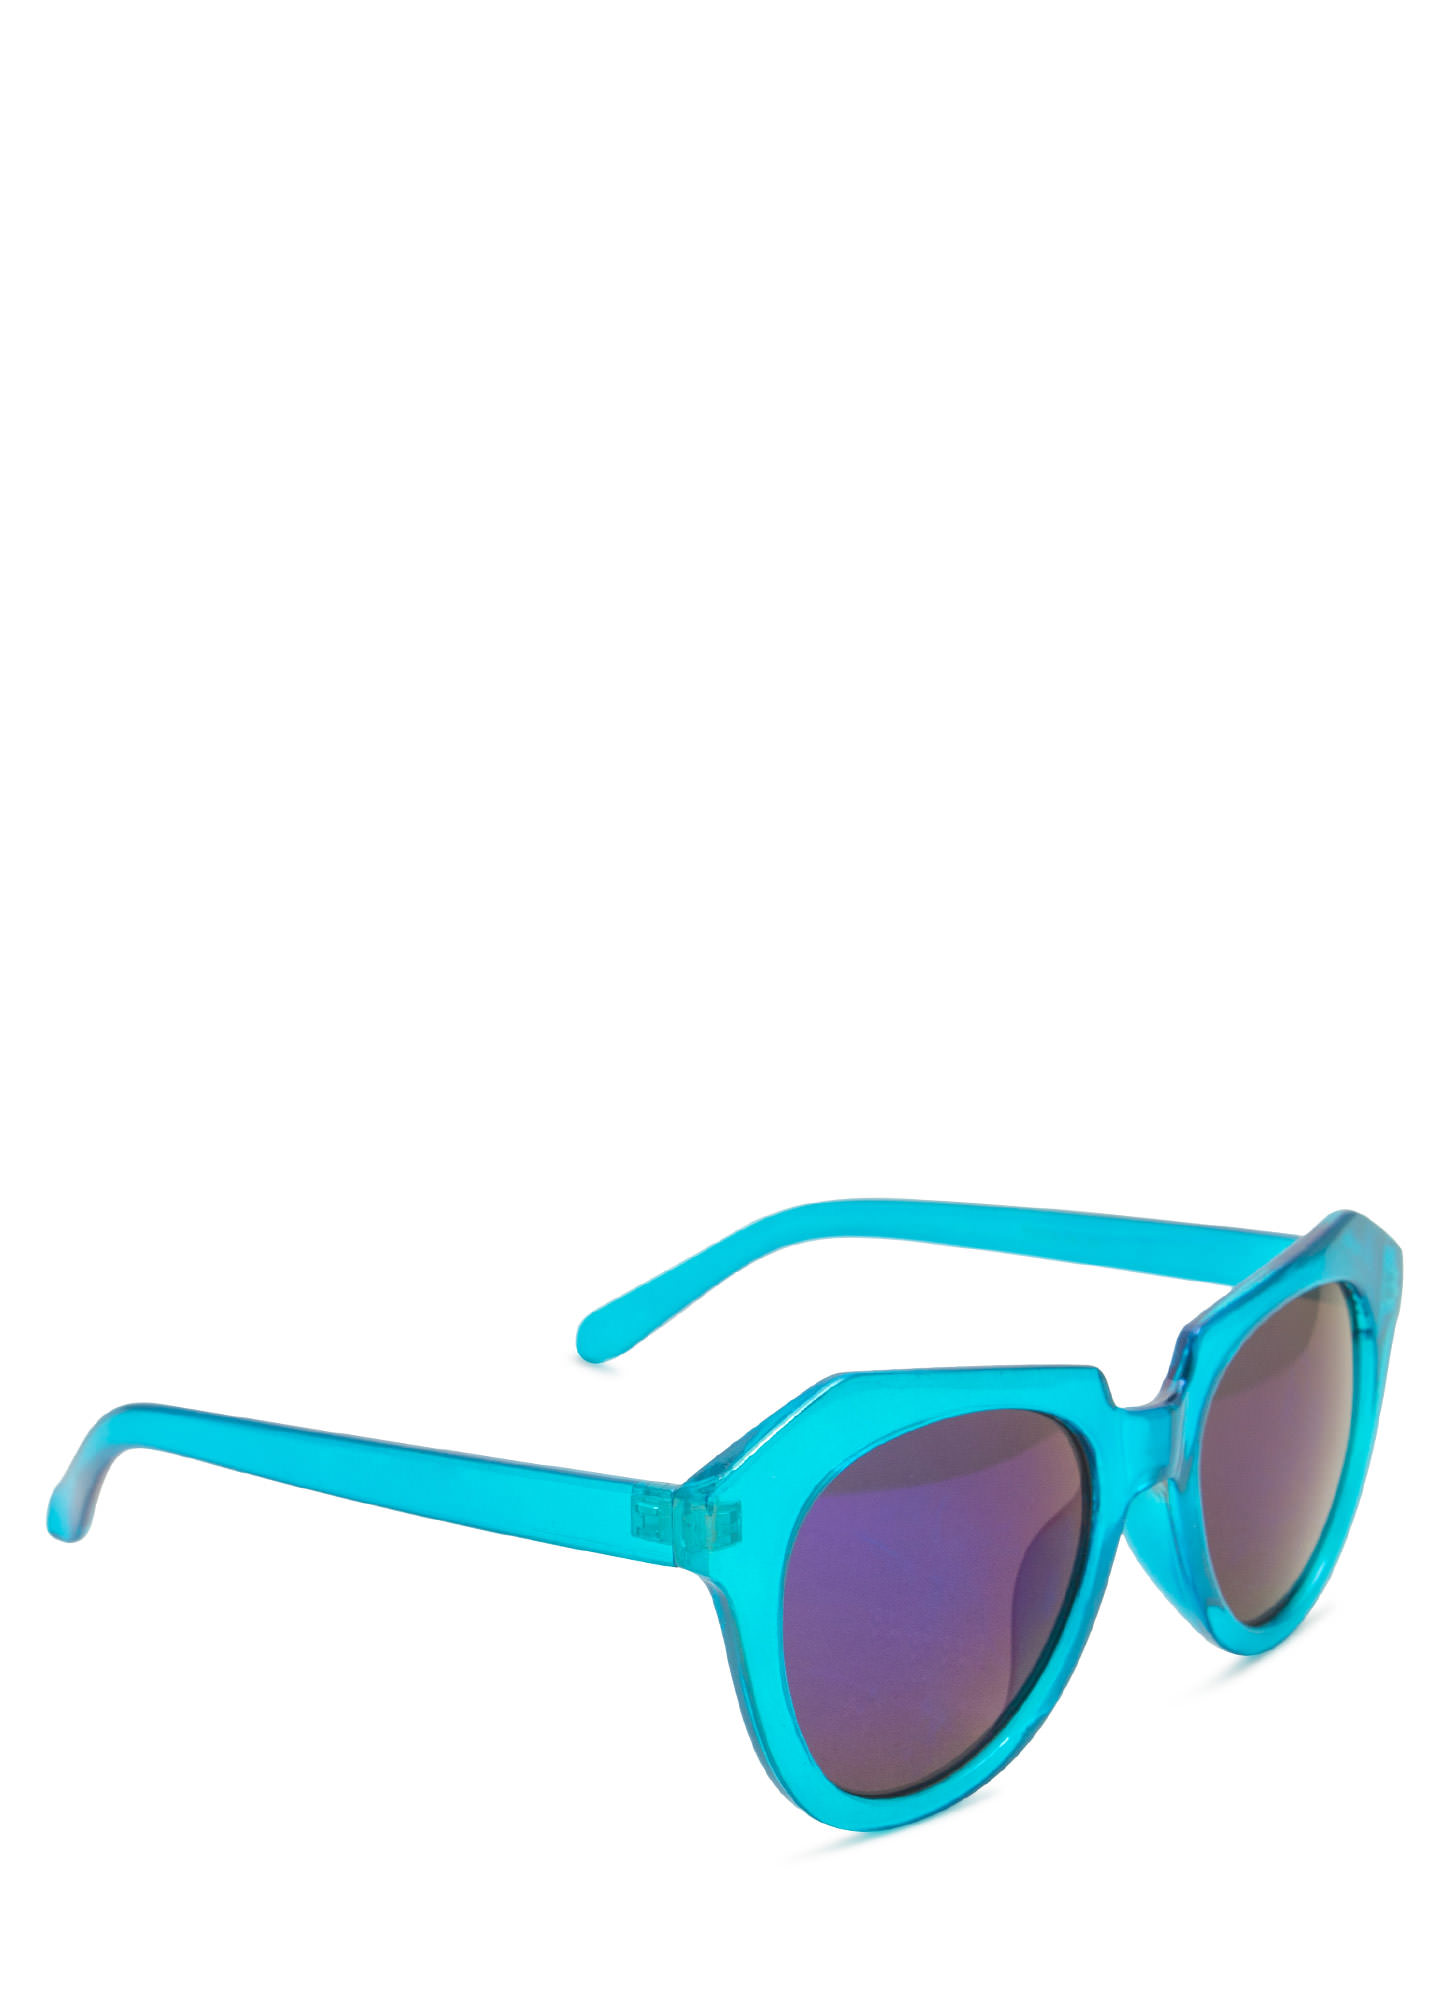 Angled Look Mirrored Sunglasses TEAL